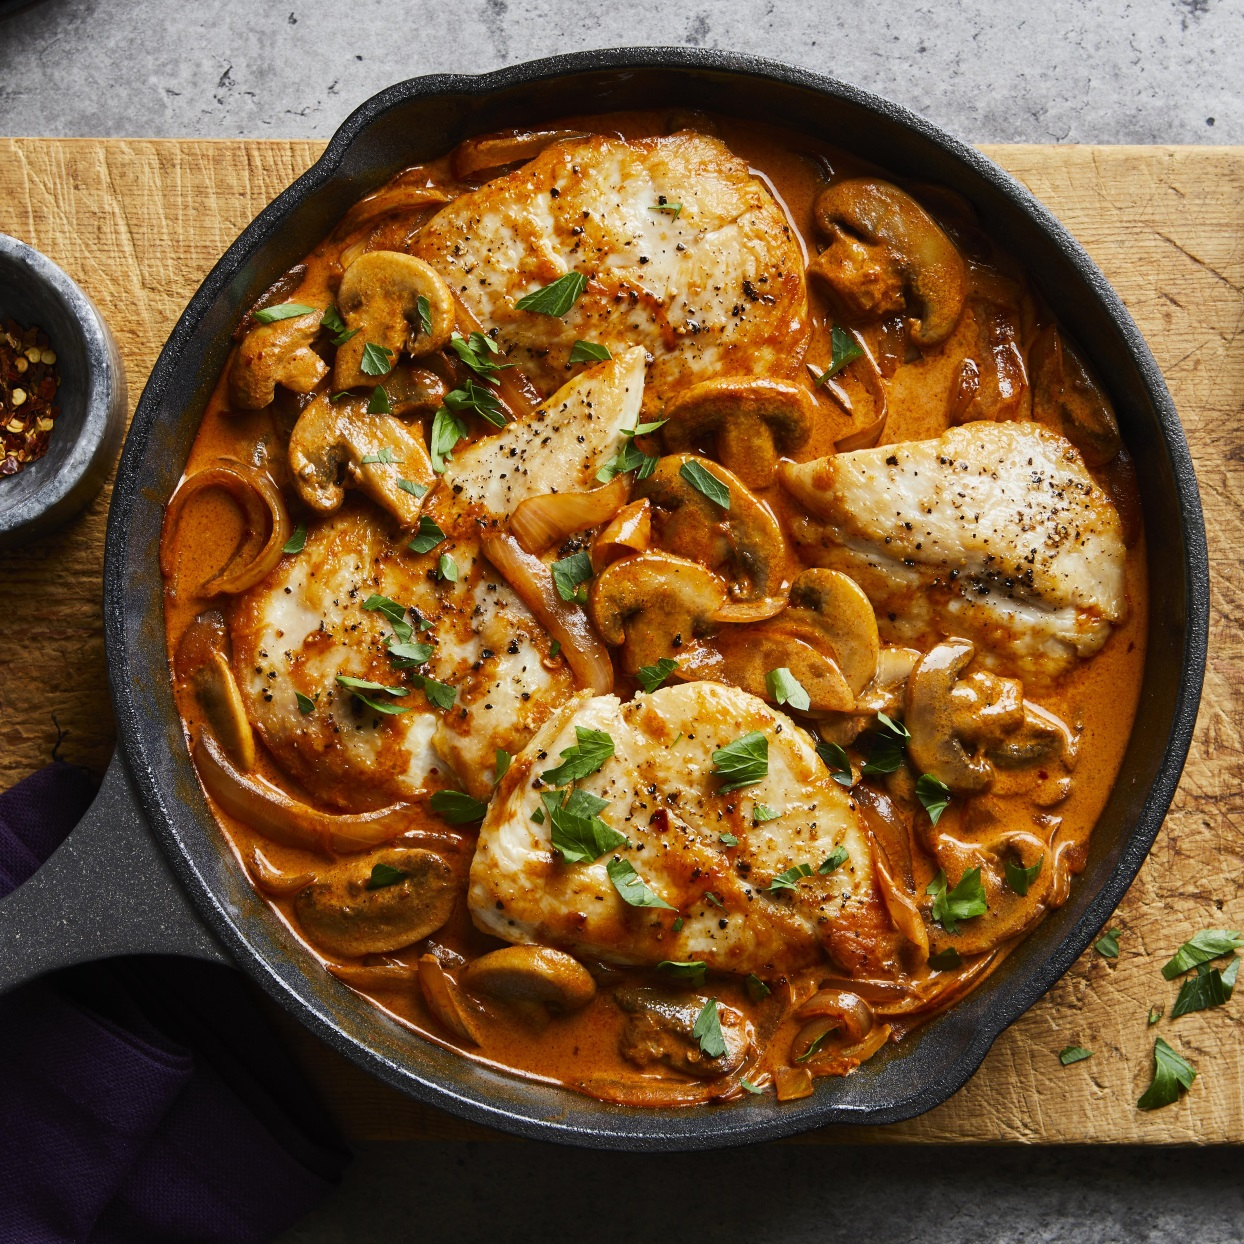 Try this quick and easy one-skillet version of the Hungarian classic chicken paprikash. Serve the chicken cutlets, mushrooms and creamy sauce over egg noodles with a green salad on the side.